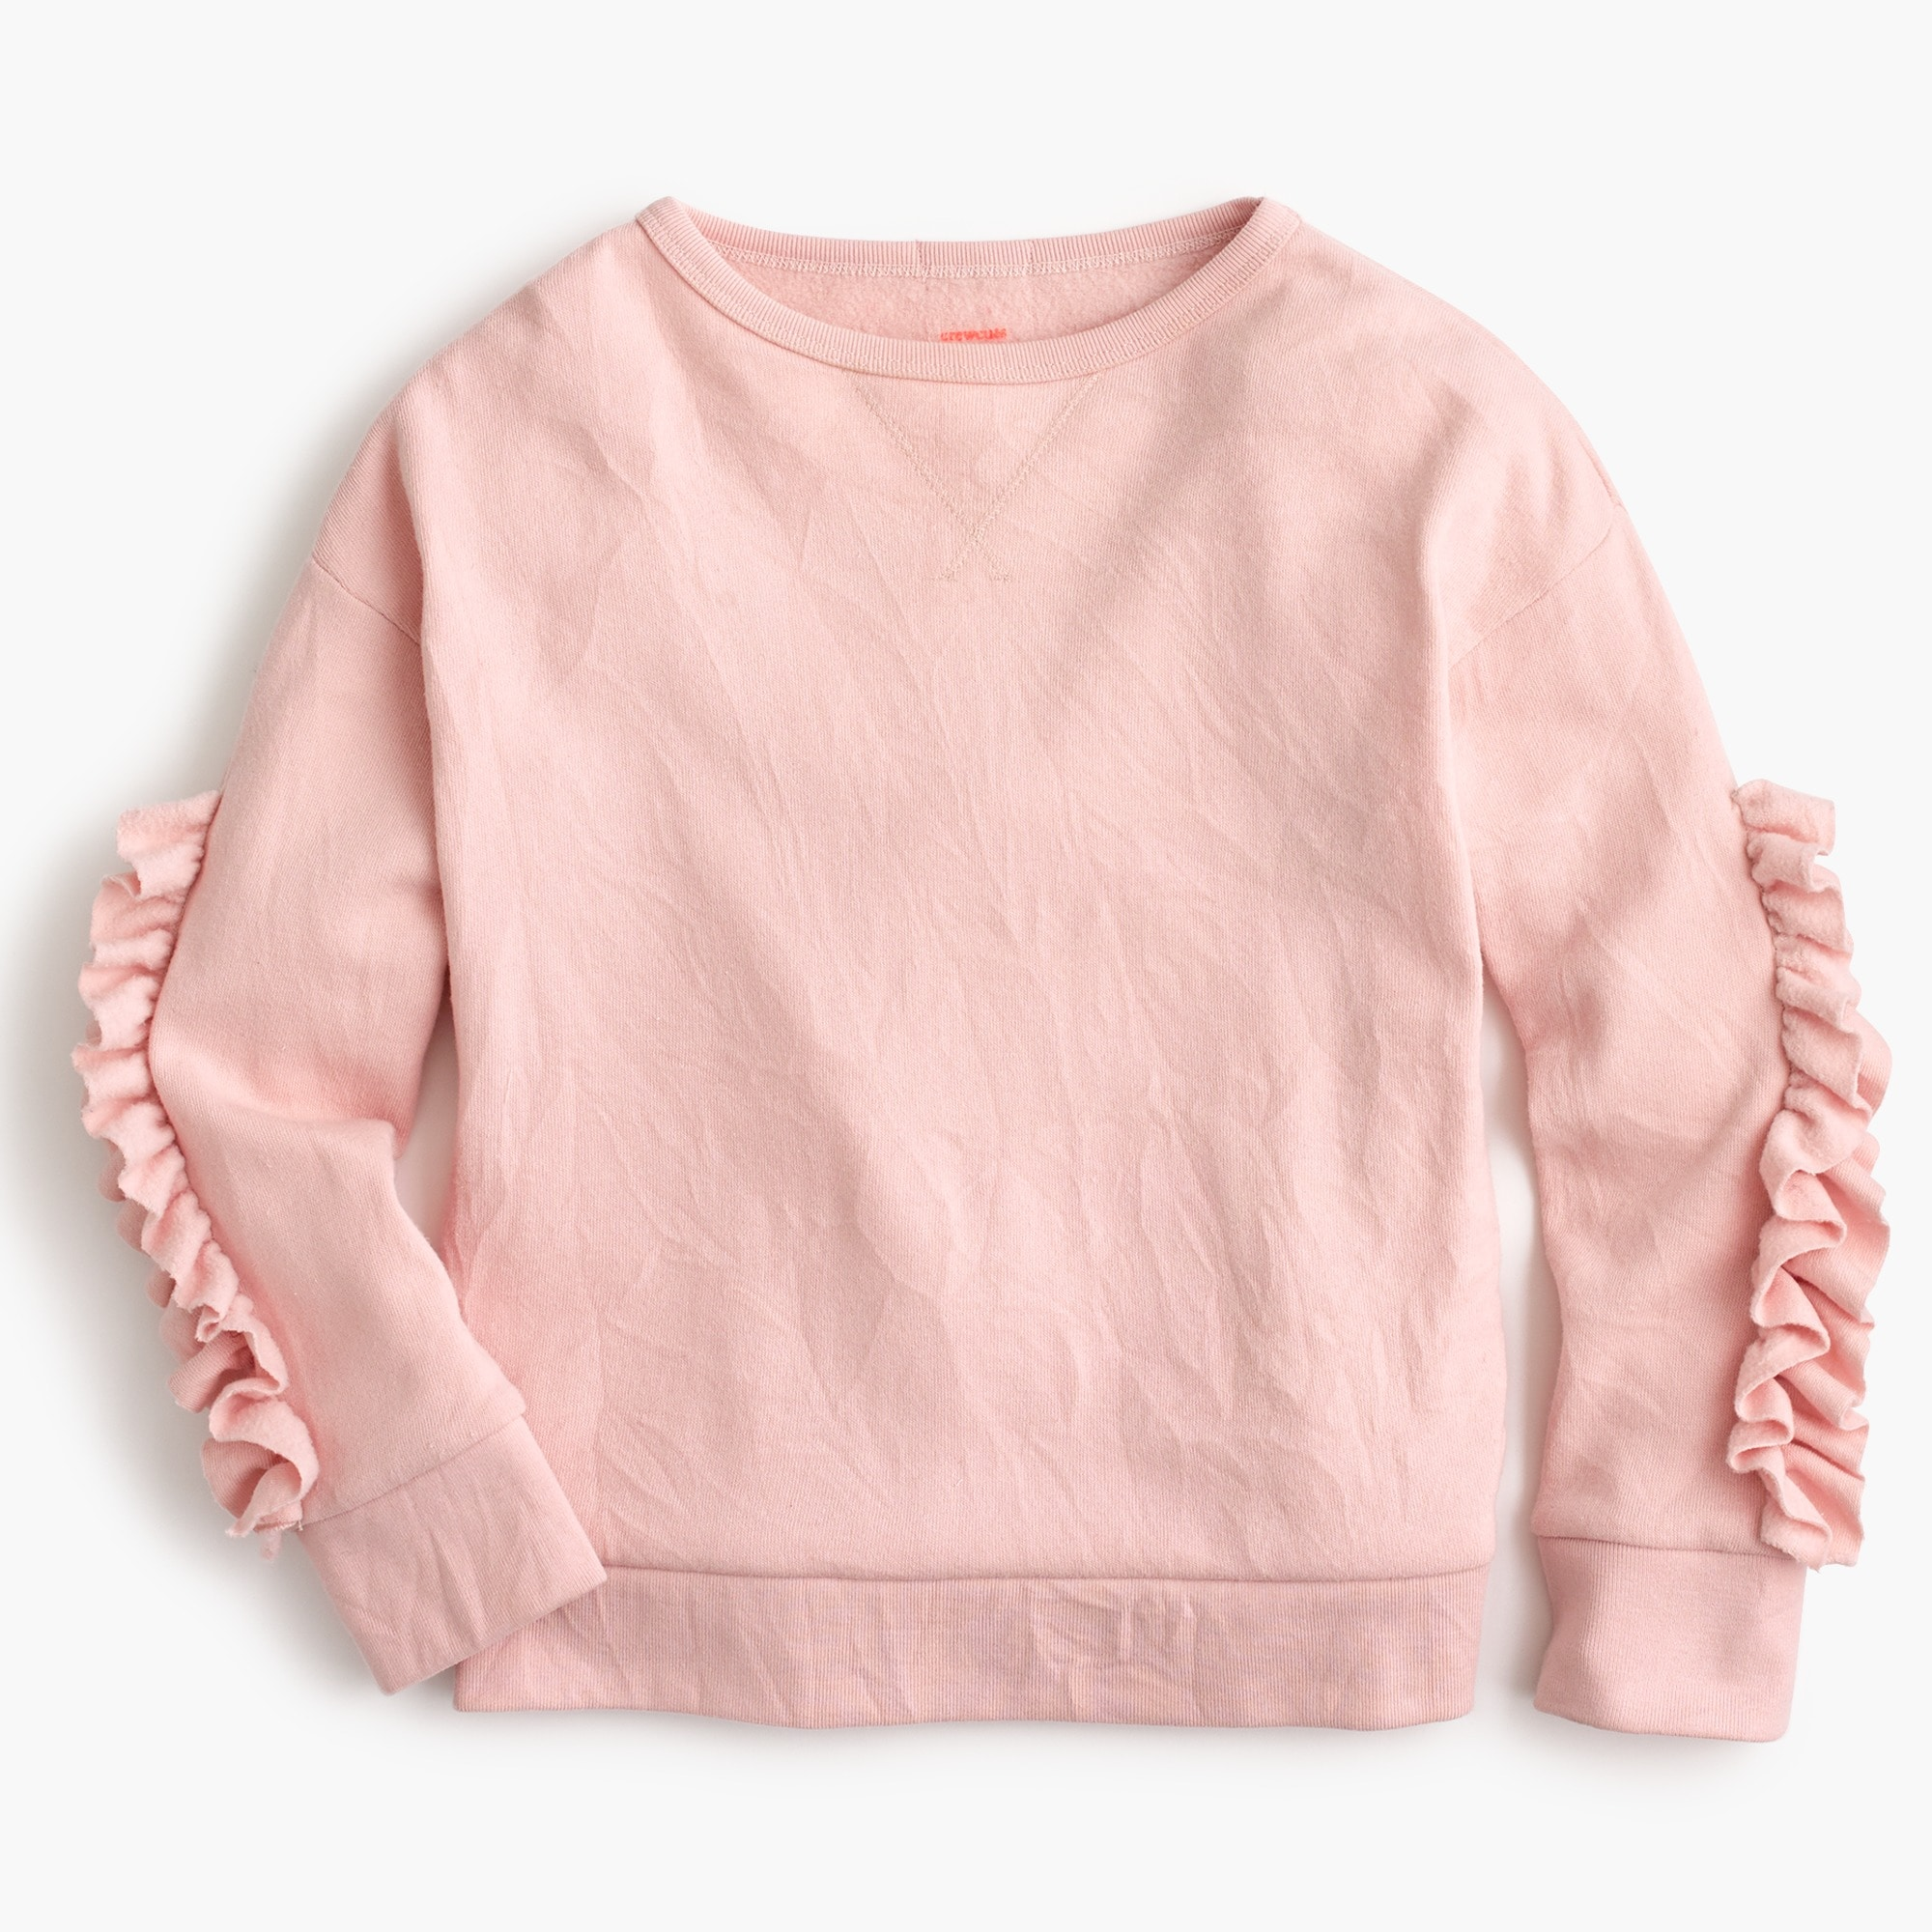 Image 1 for Girls' ruffle-trimmed sweatshirt